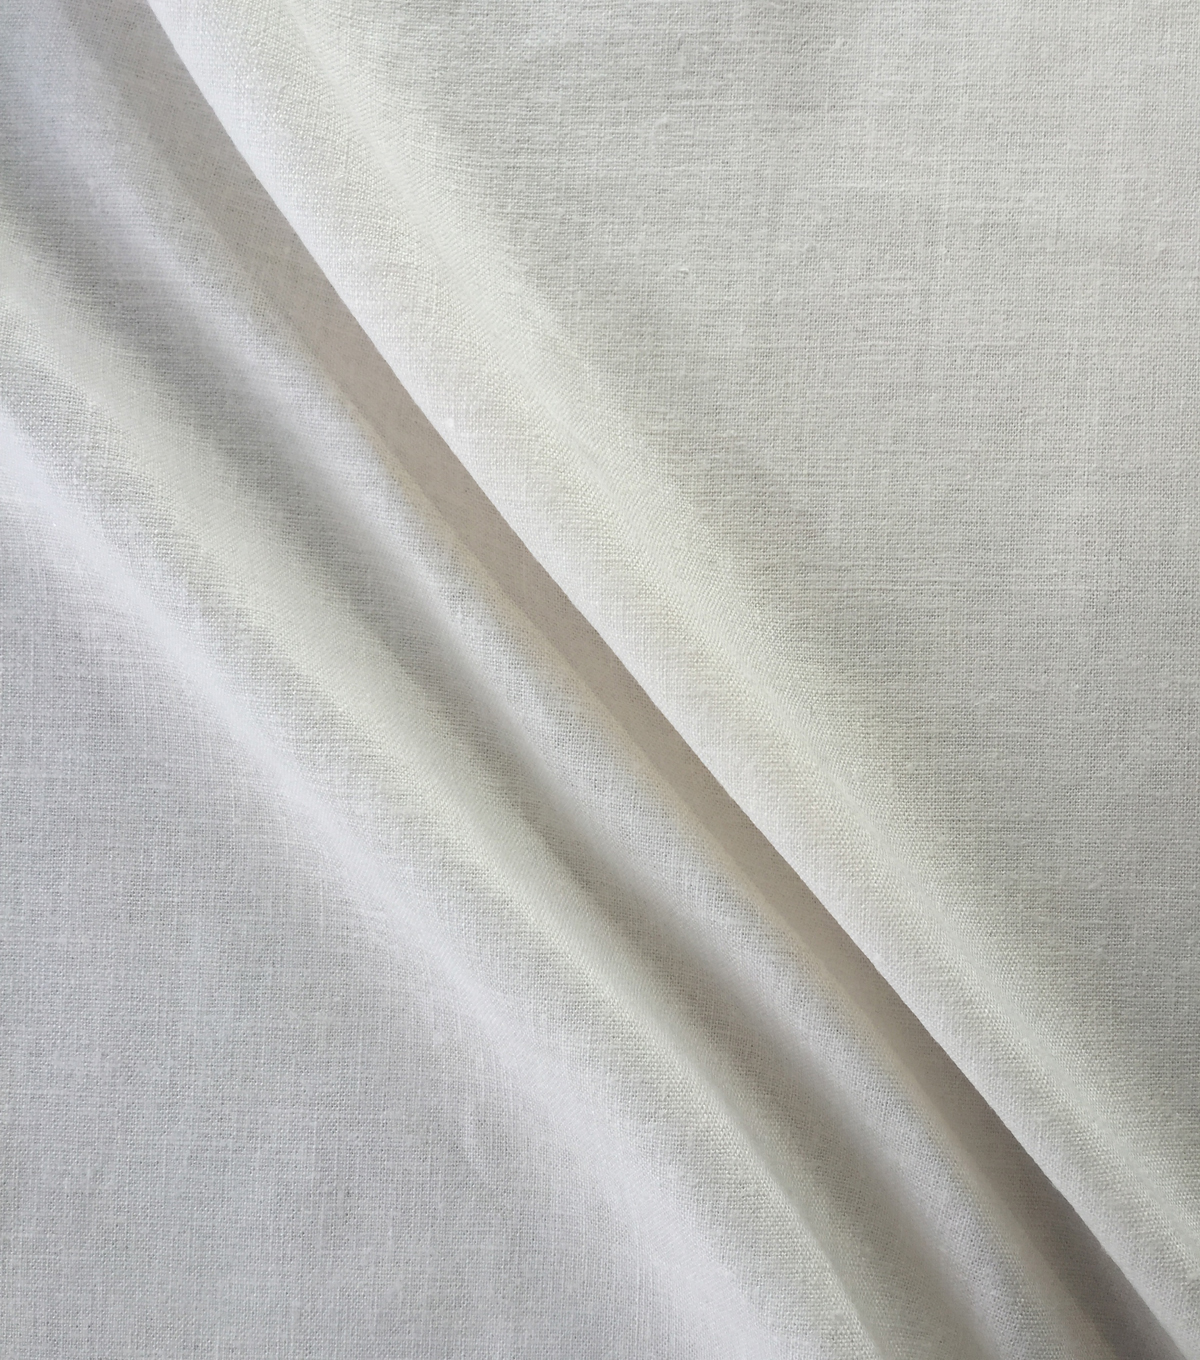 Sew Classics Linen Look Fabric -Solid, White Linen Look